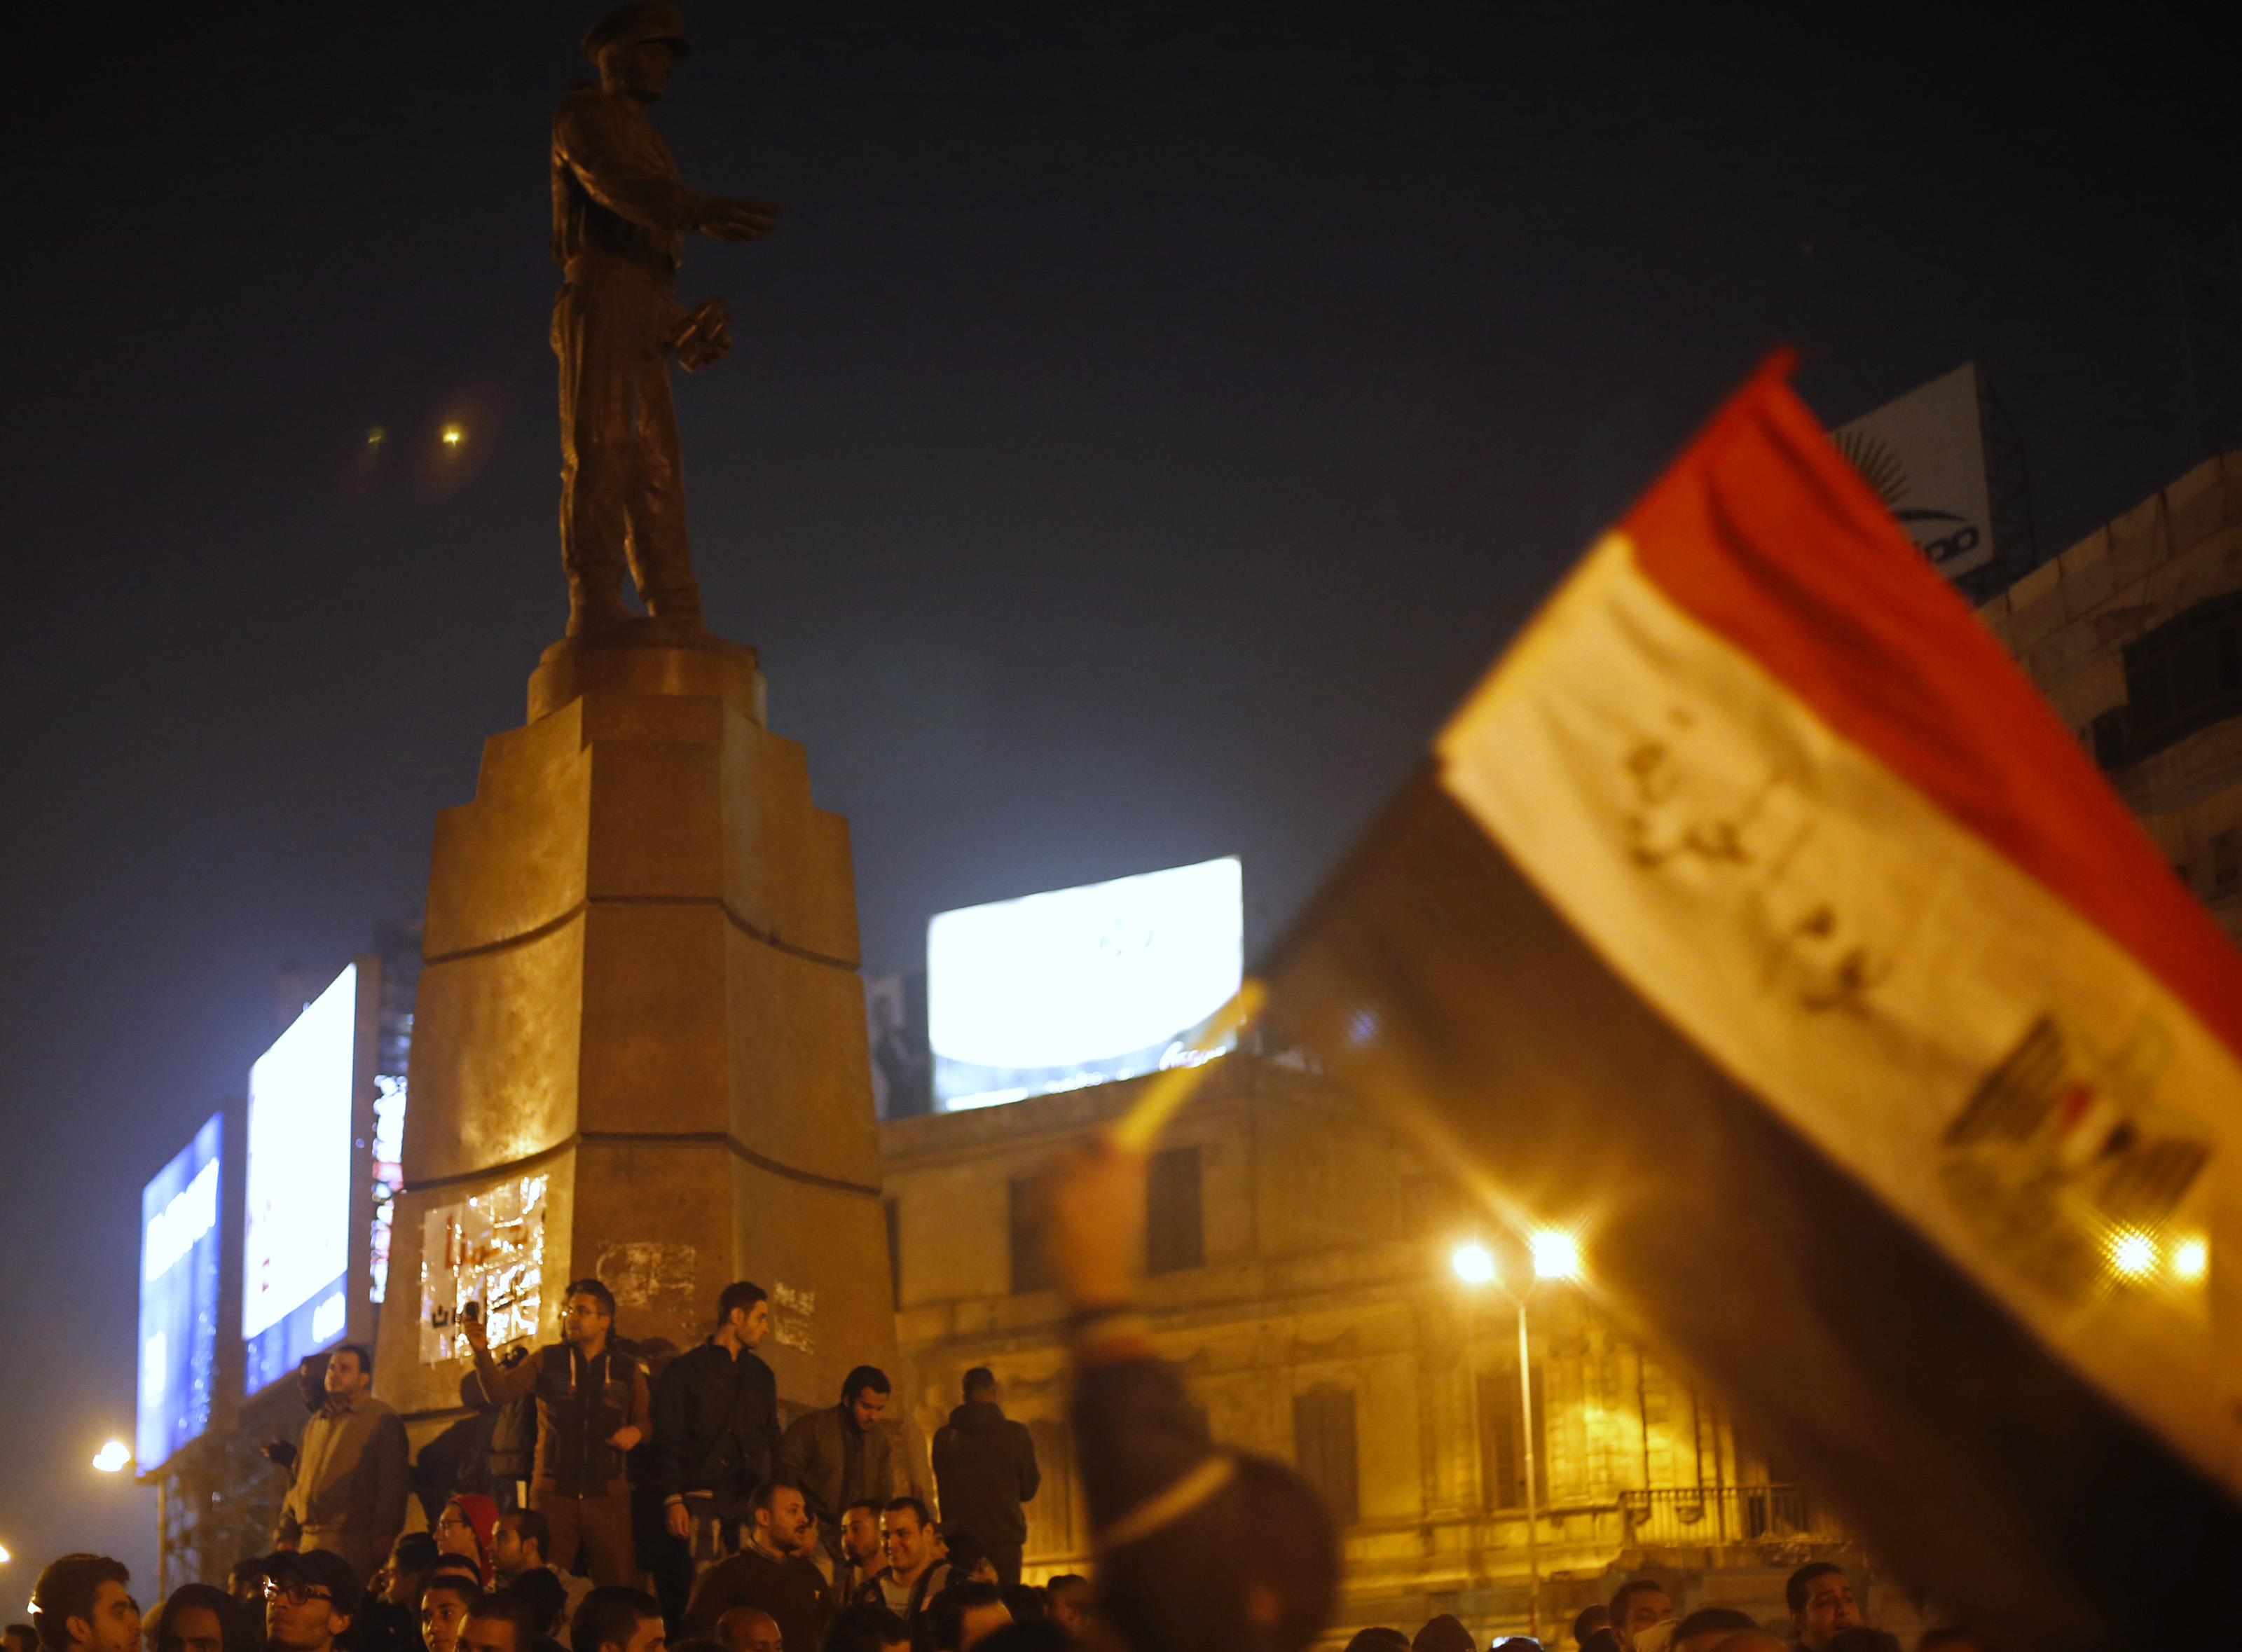 10 protesters arrested near Tahrir Square